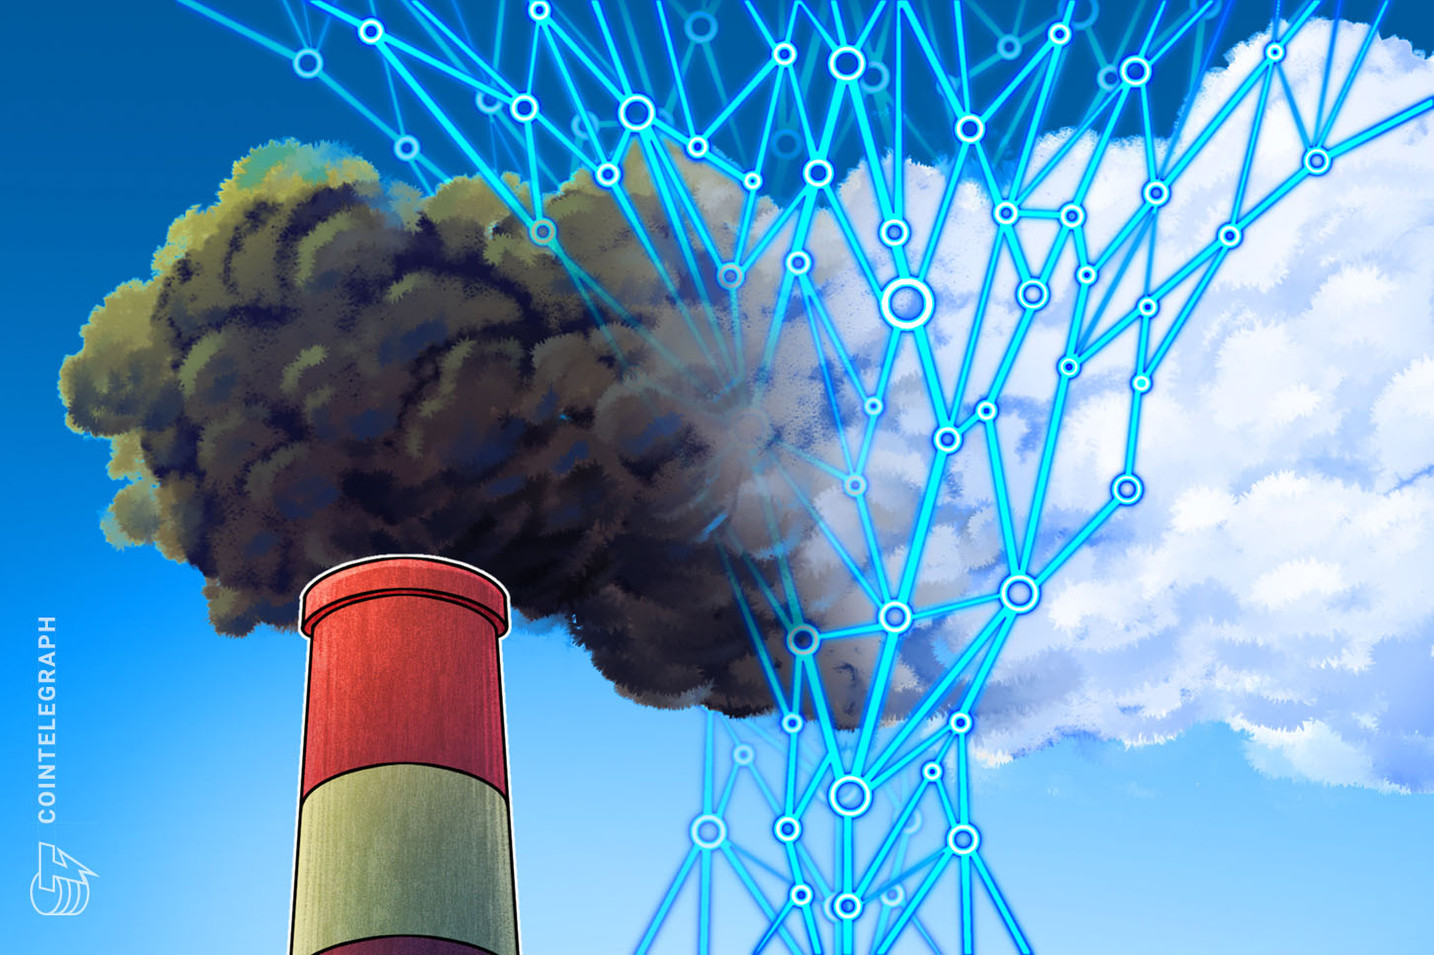 'Existential threat' to Bitcoin-investing companies from carbon fallout